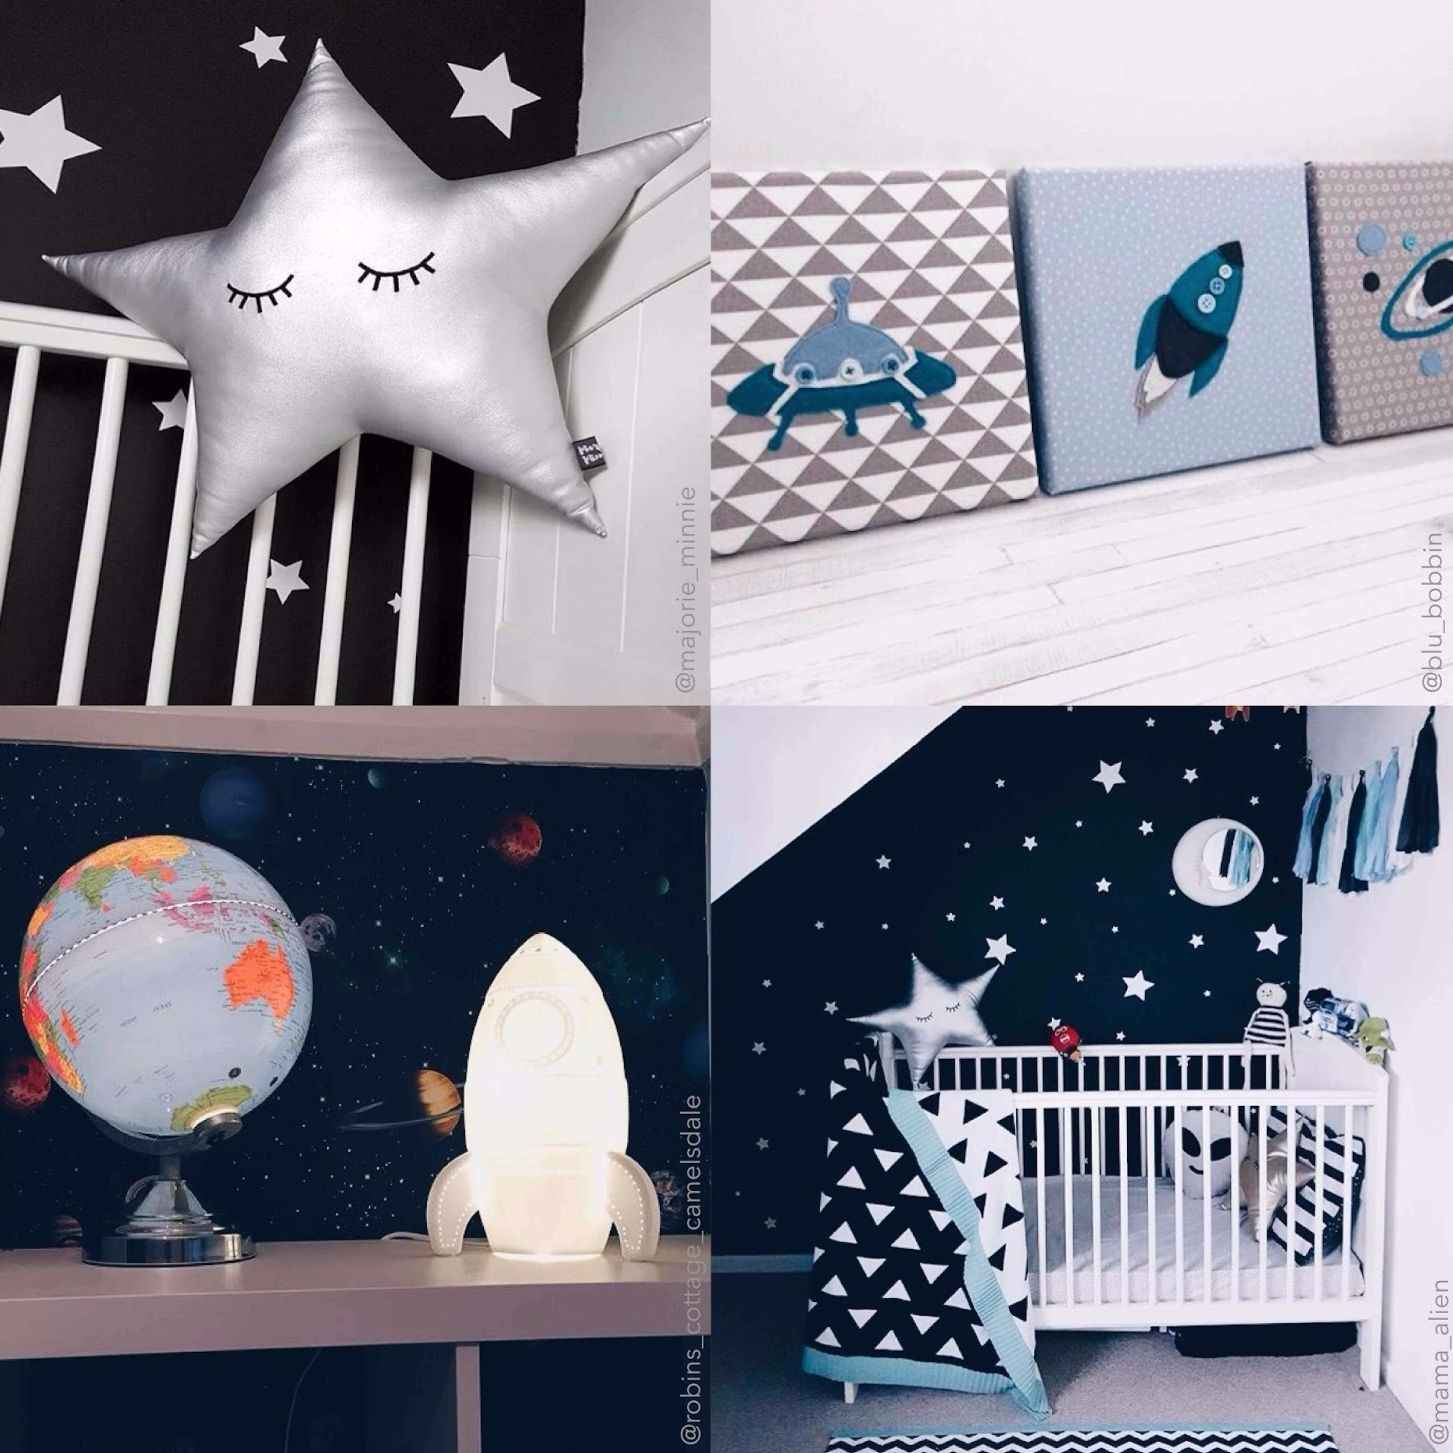 How to create a space themed bedroom for your little astronaut